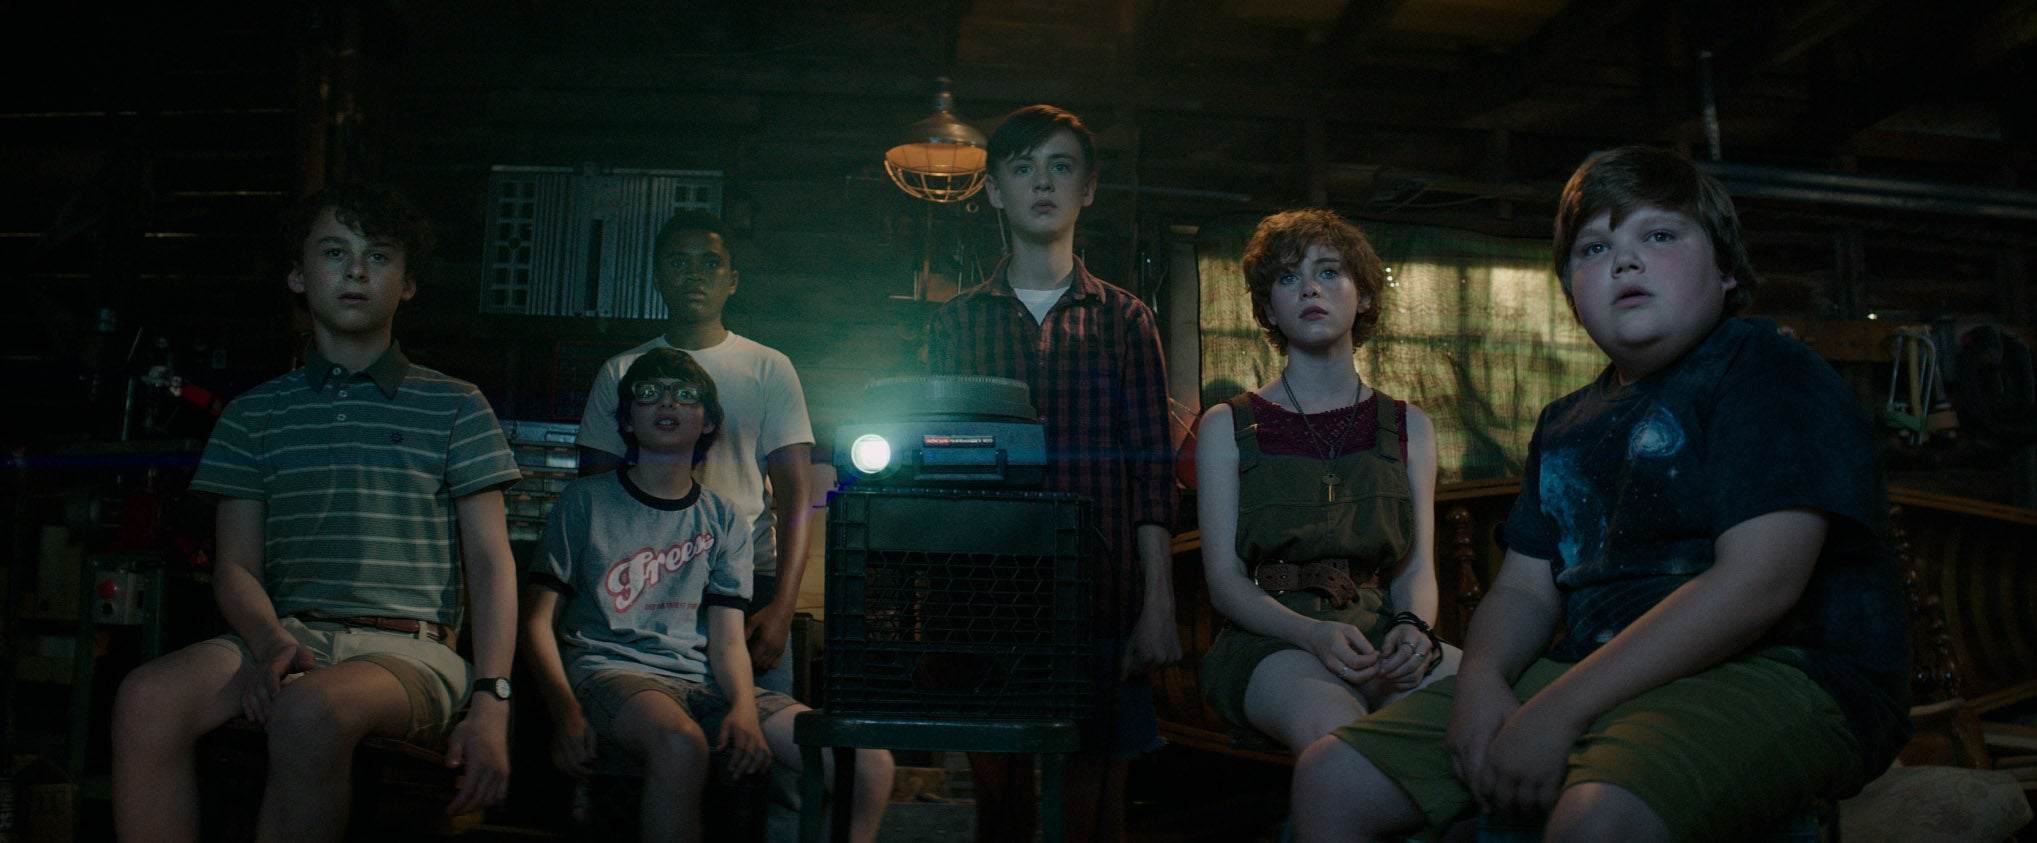 The It Sequel Finally Has An Official Release Date